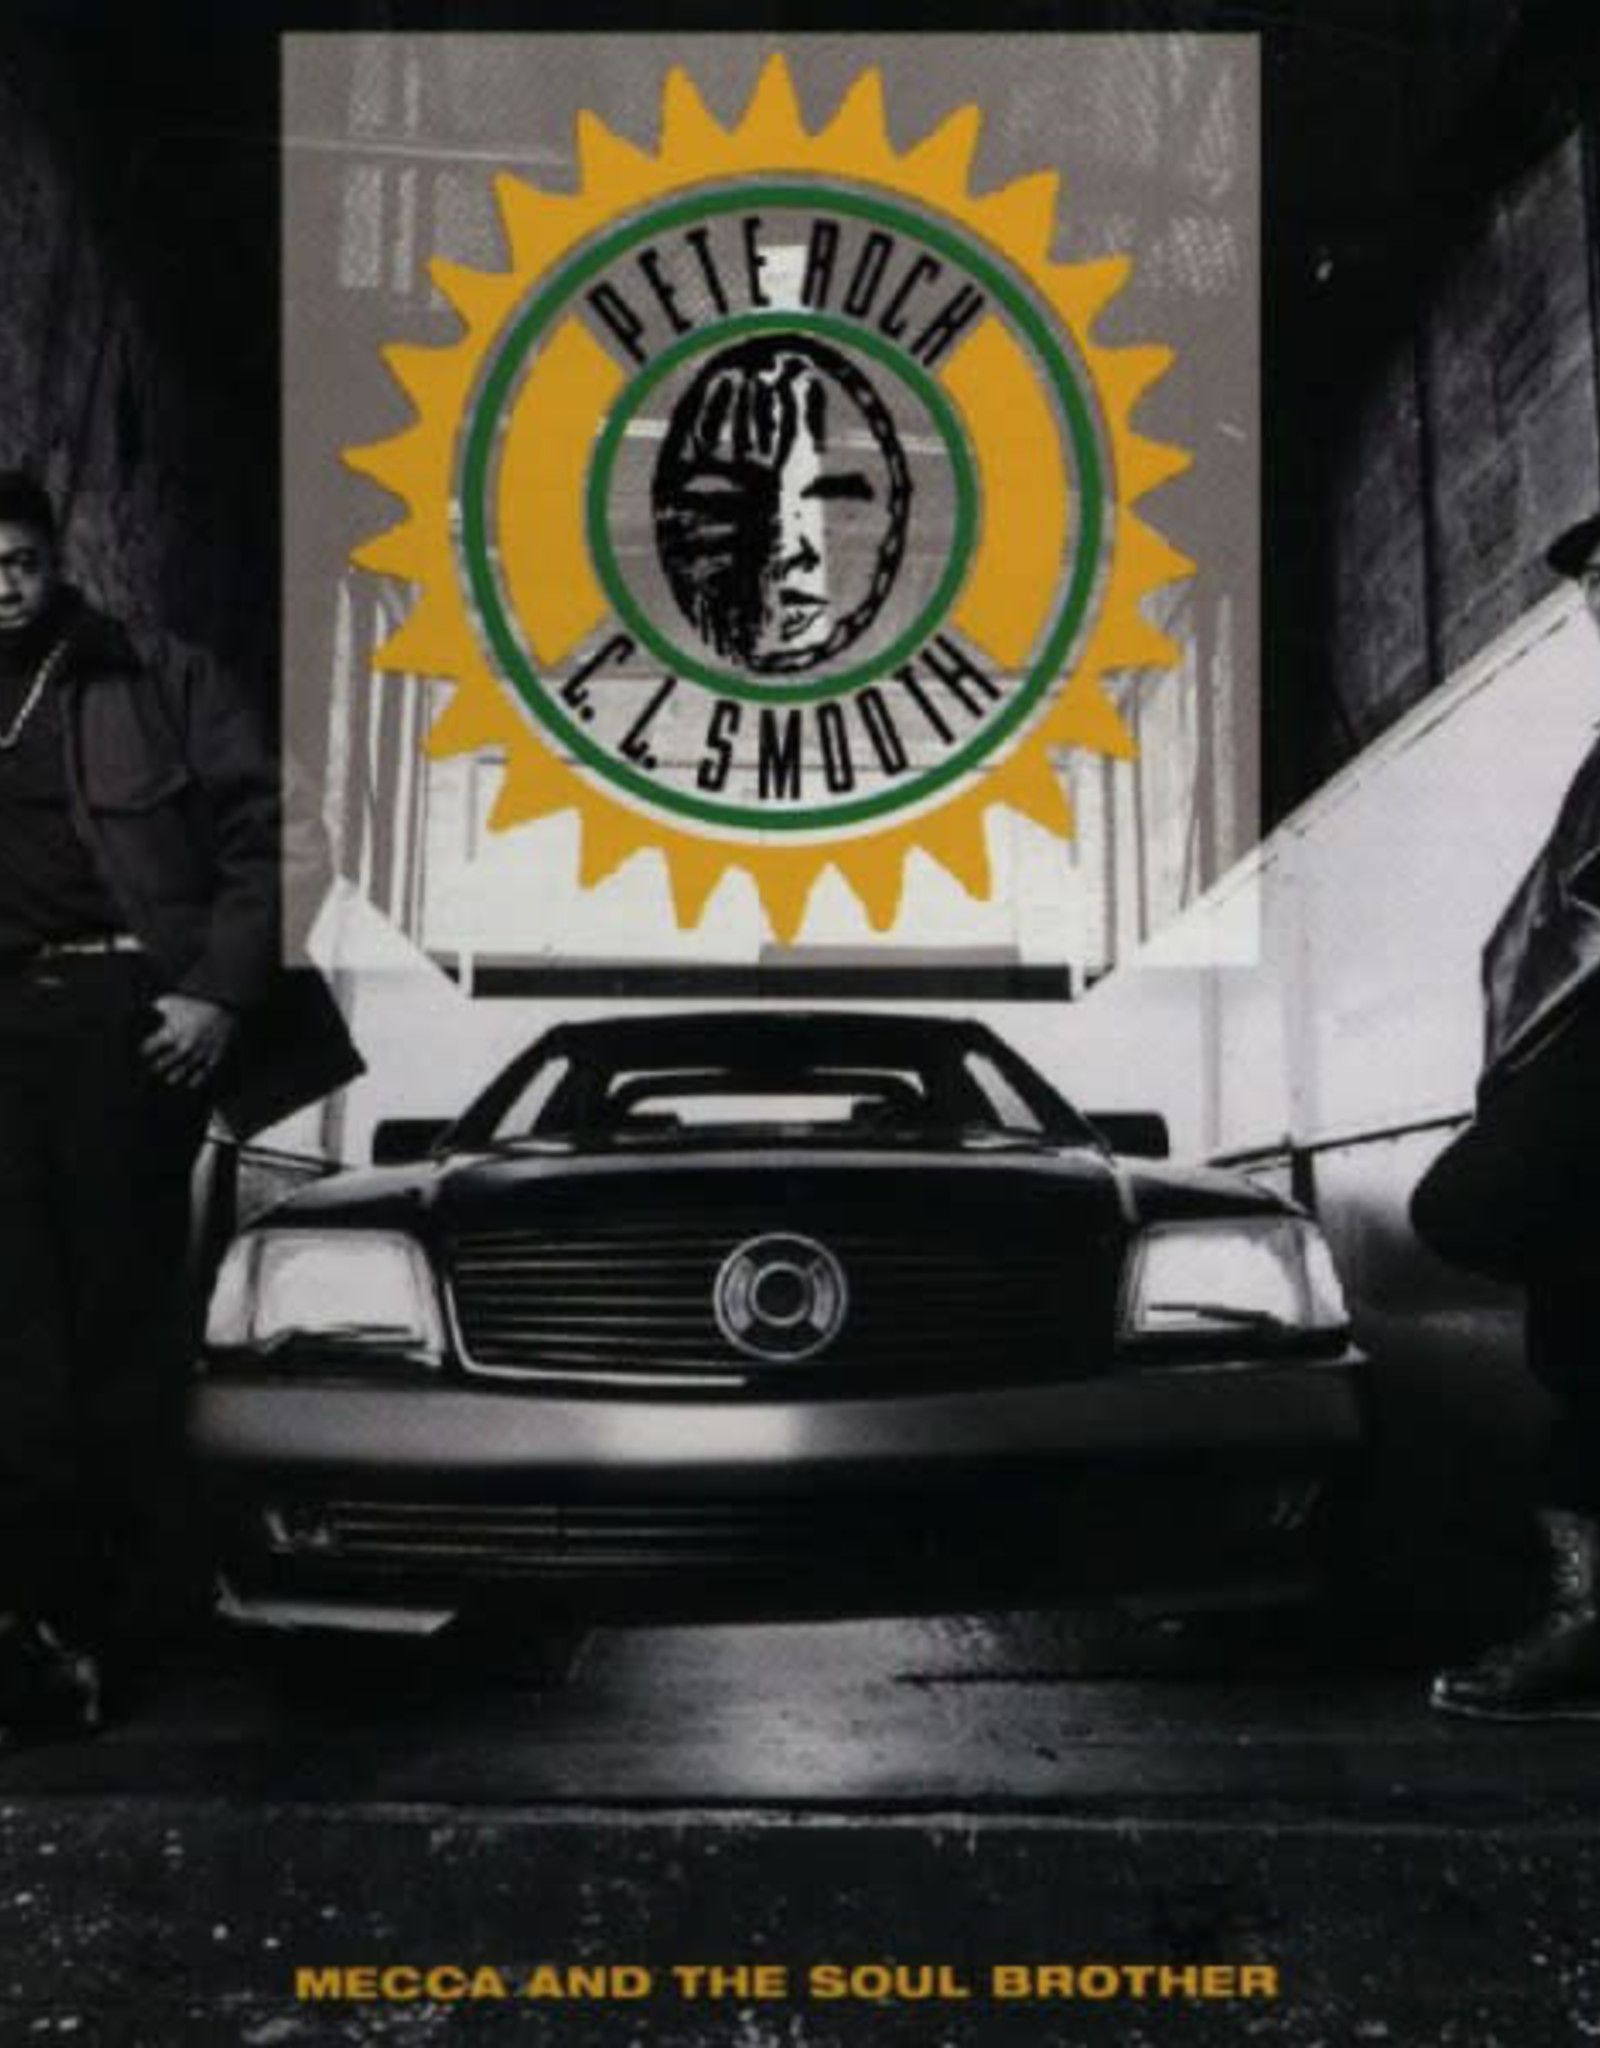 Pete Rock & C.L. Smooth - Meccaand The Soul Brother (2 Lp'